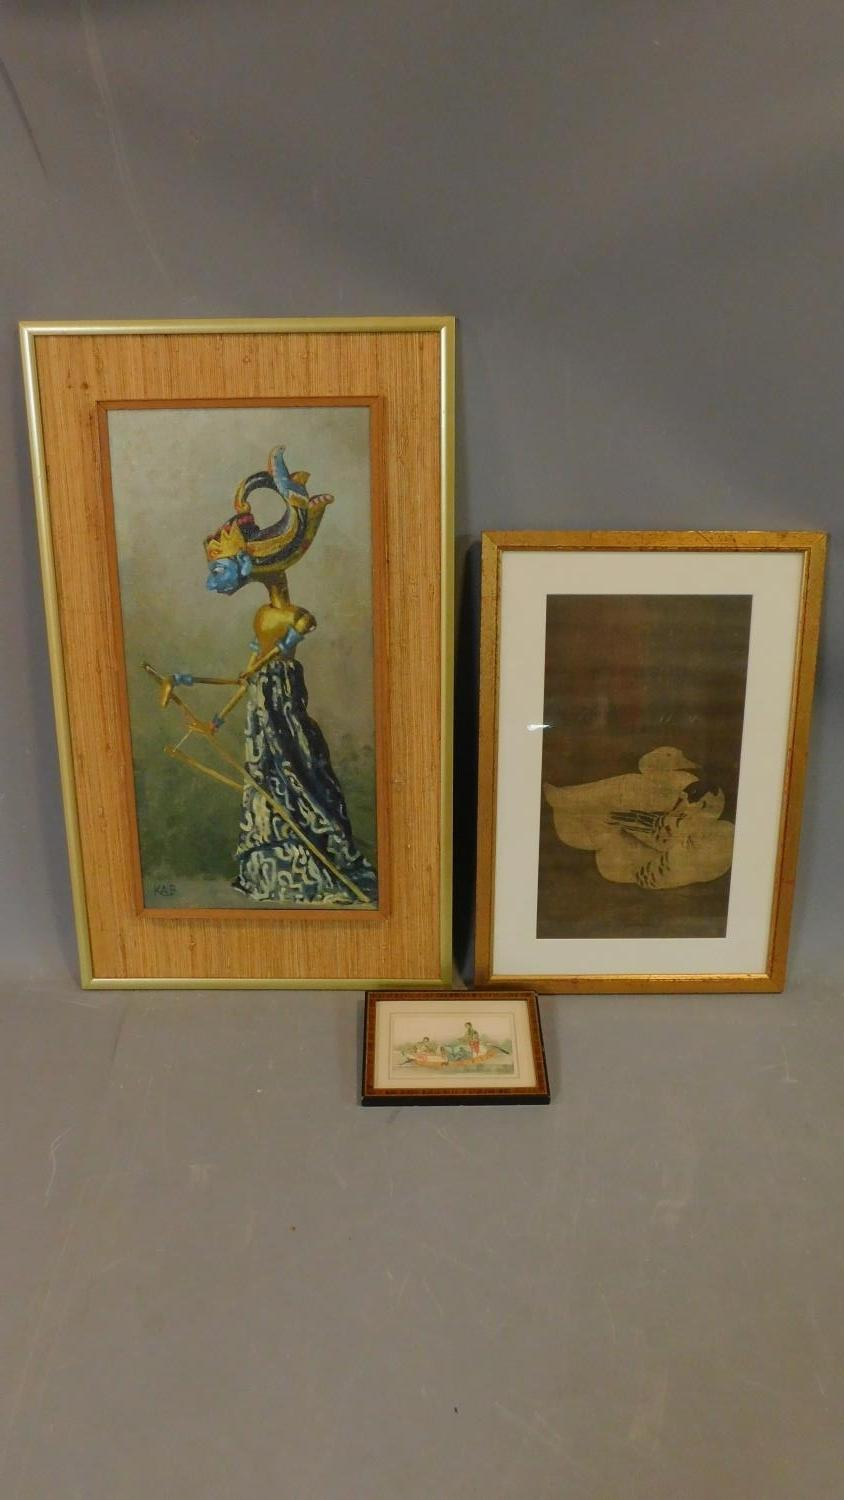 A framed oil on board, puppet of Lord Krishna a framed Chinese screen print of ducks and a miniature